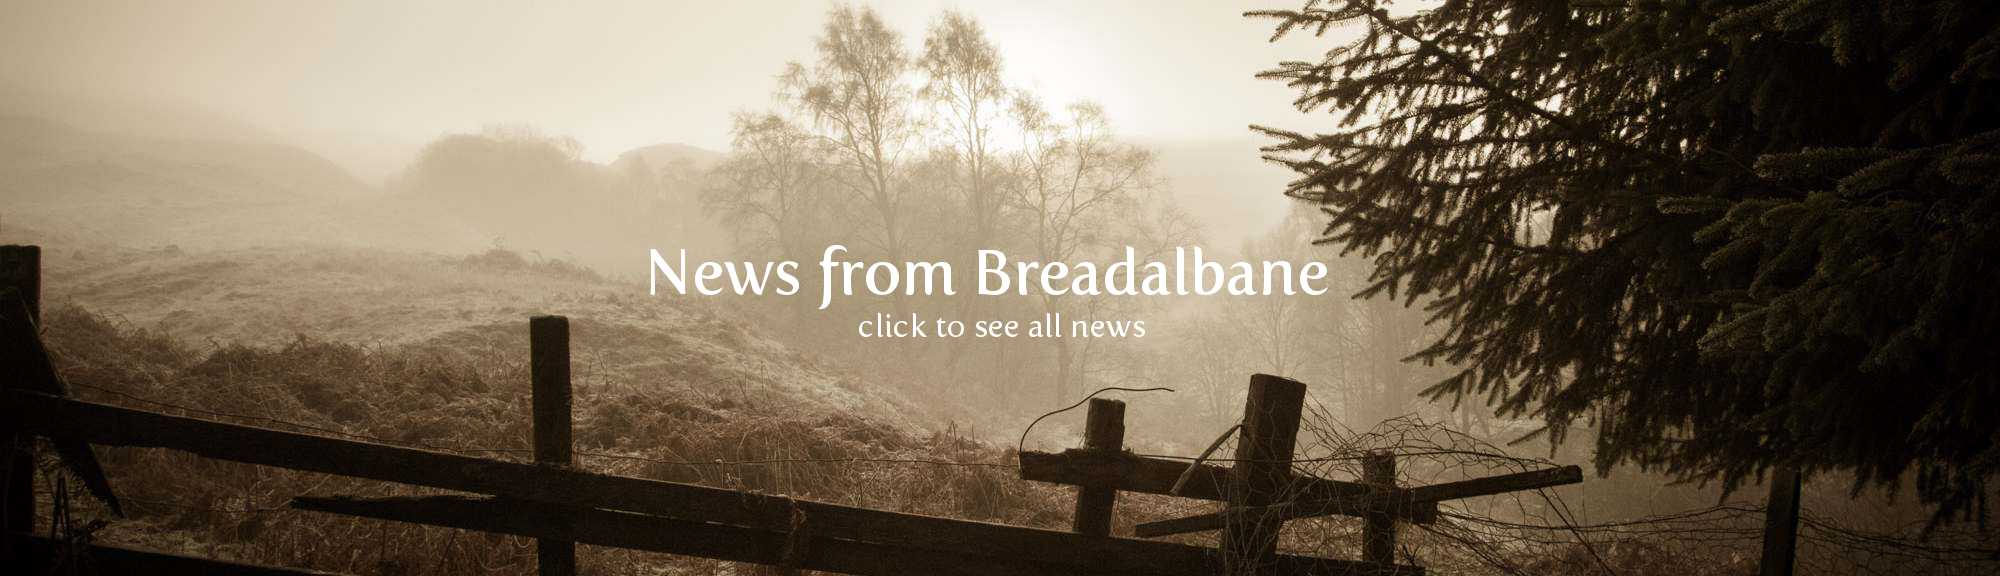 News from Breadalbane, the heart of Scotland